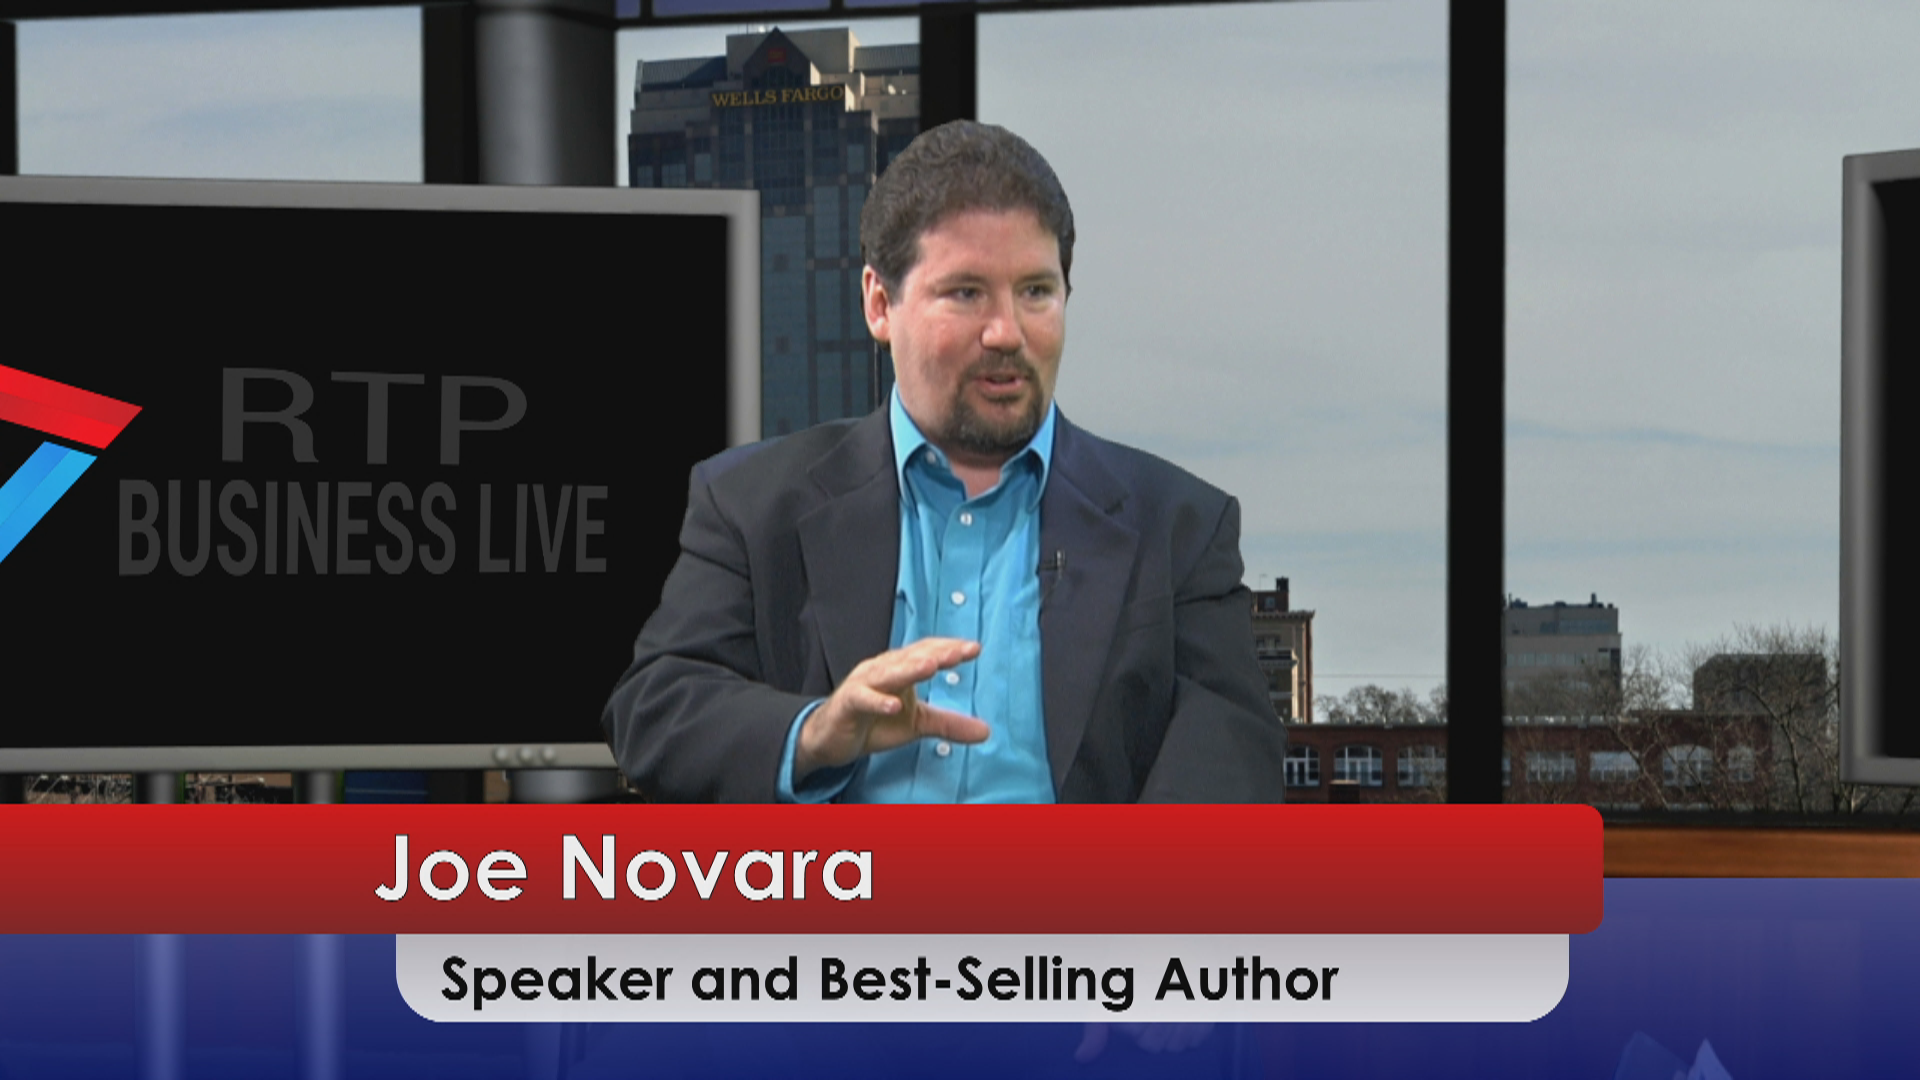 Speaker & Best-selling Author – Joe Novara